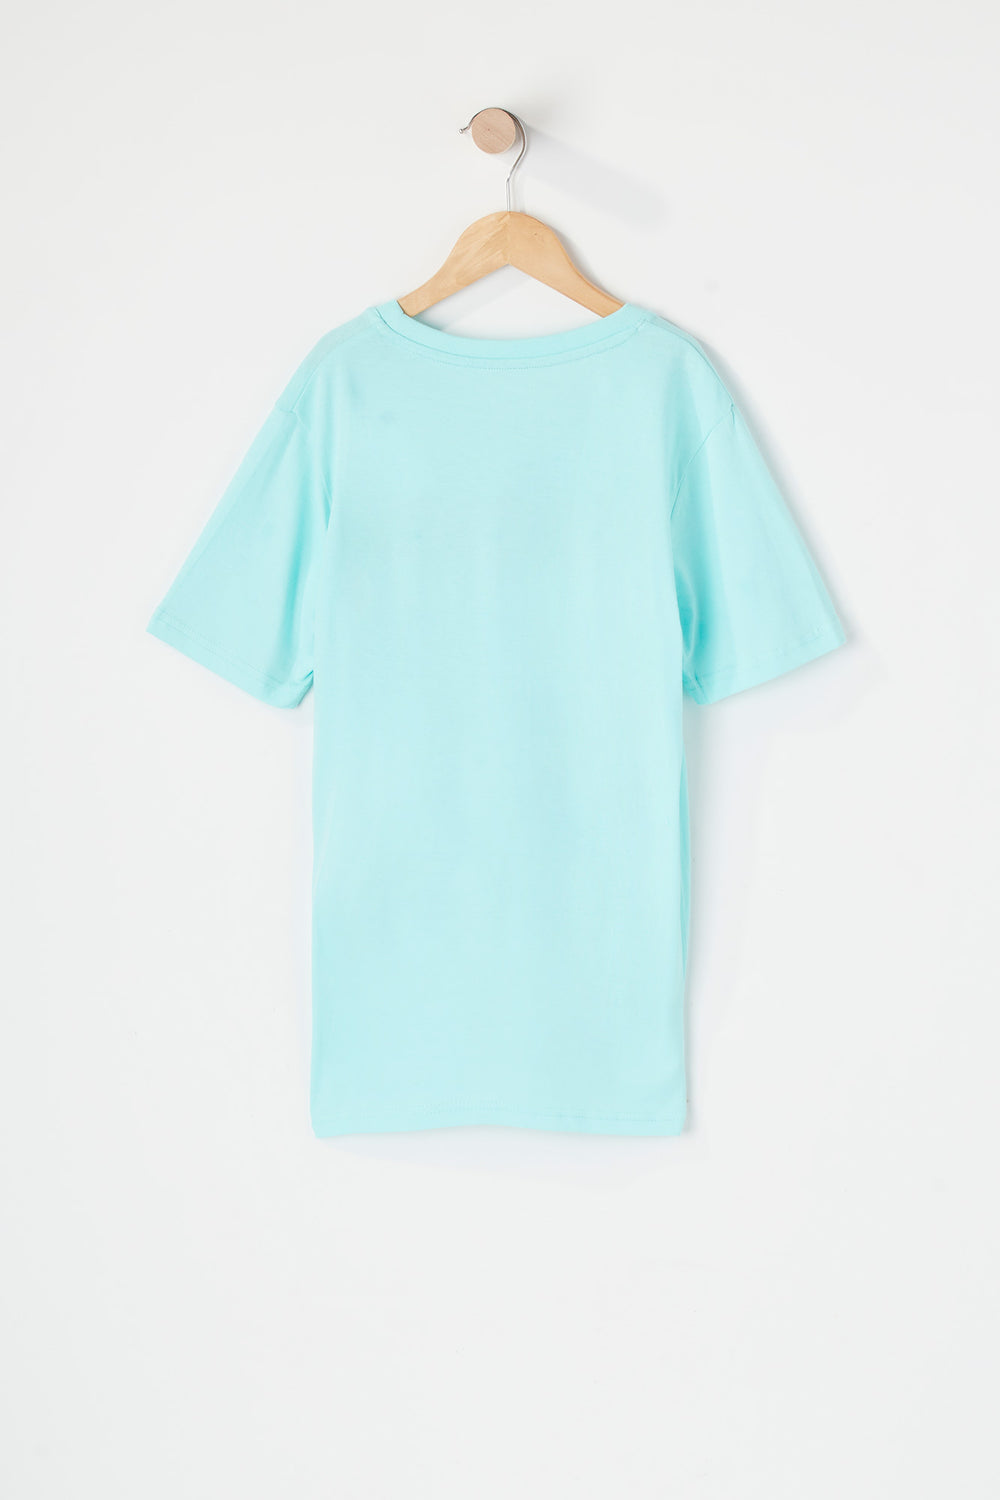 Zoo York Youth Gradient Logo T-Shirt Turquoise